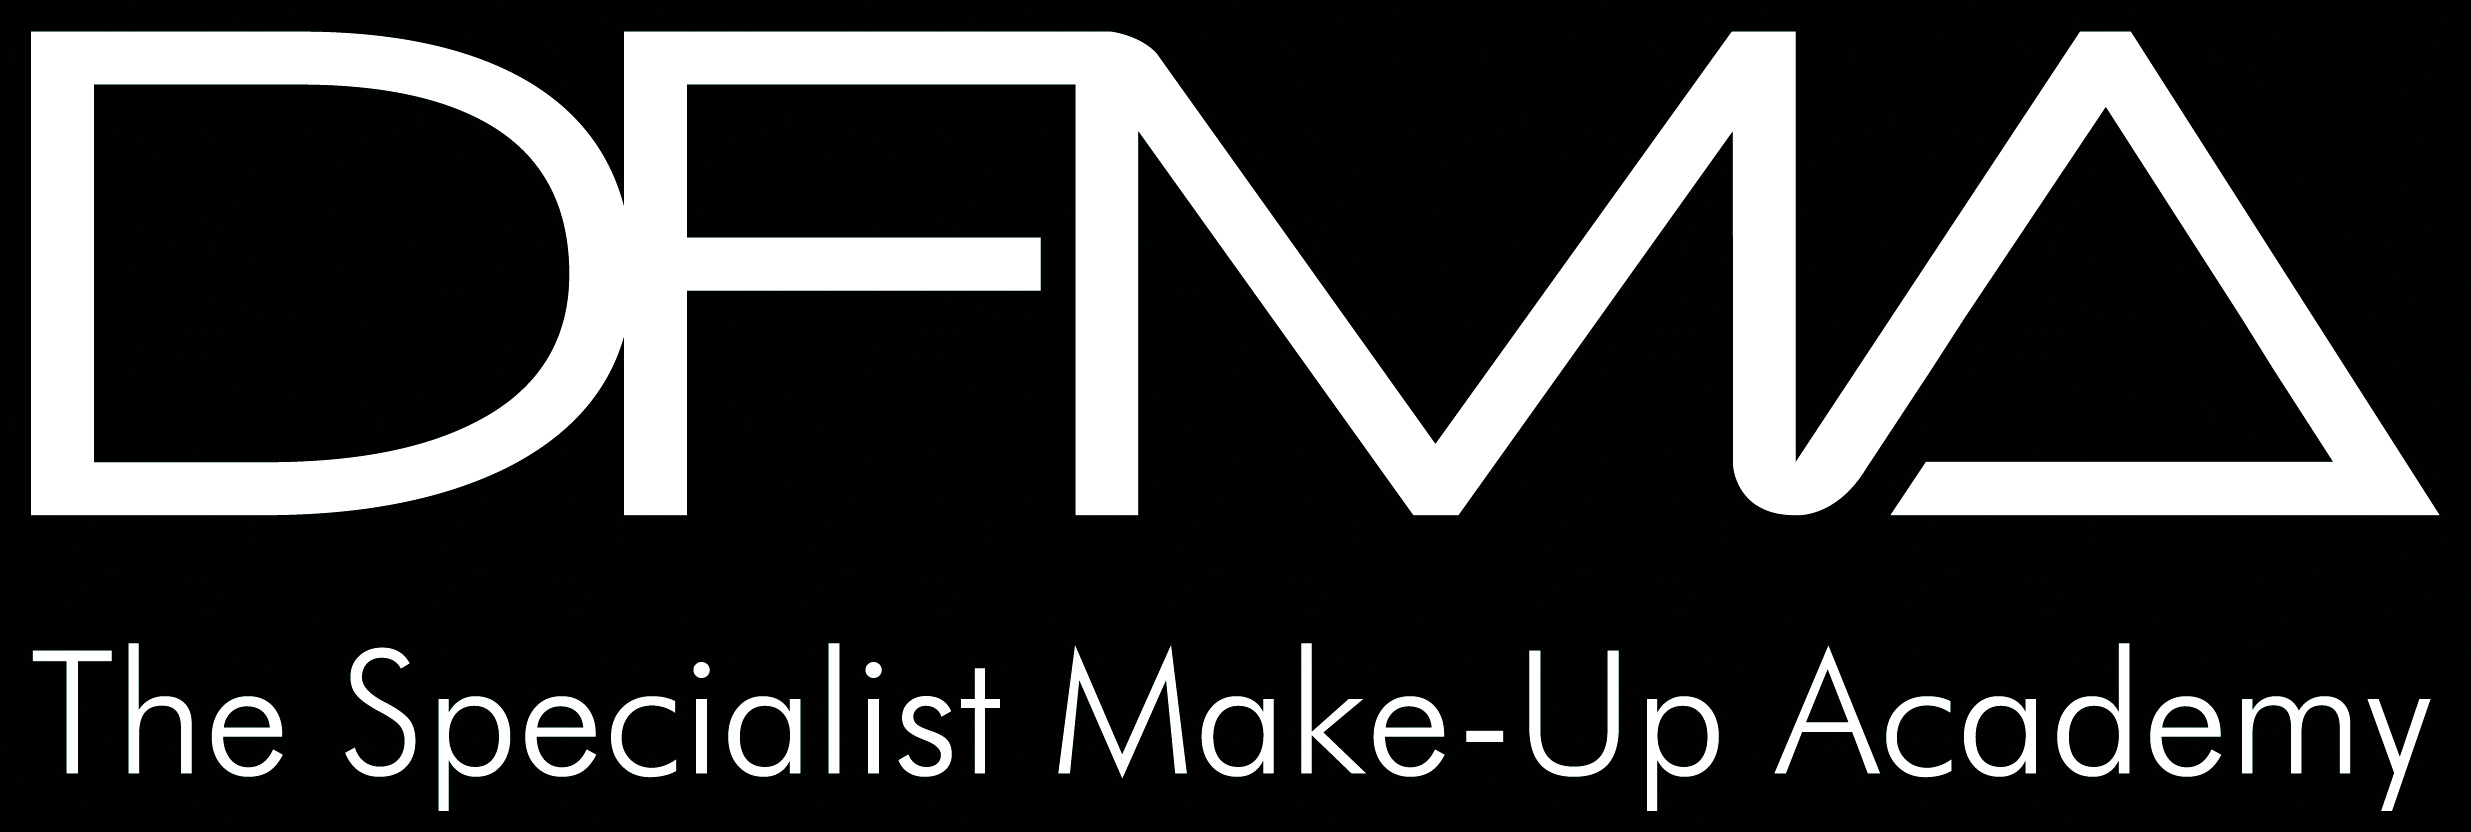 Read DFMA Make Up Academy Reviews